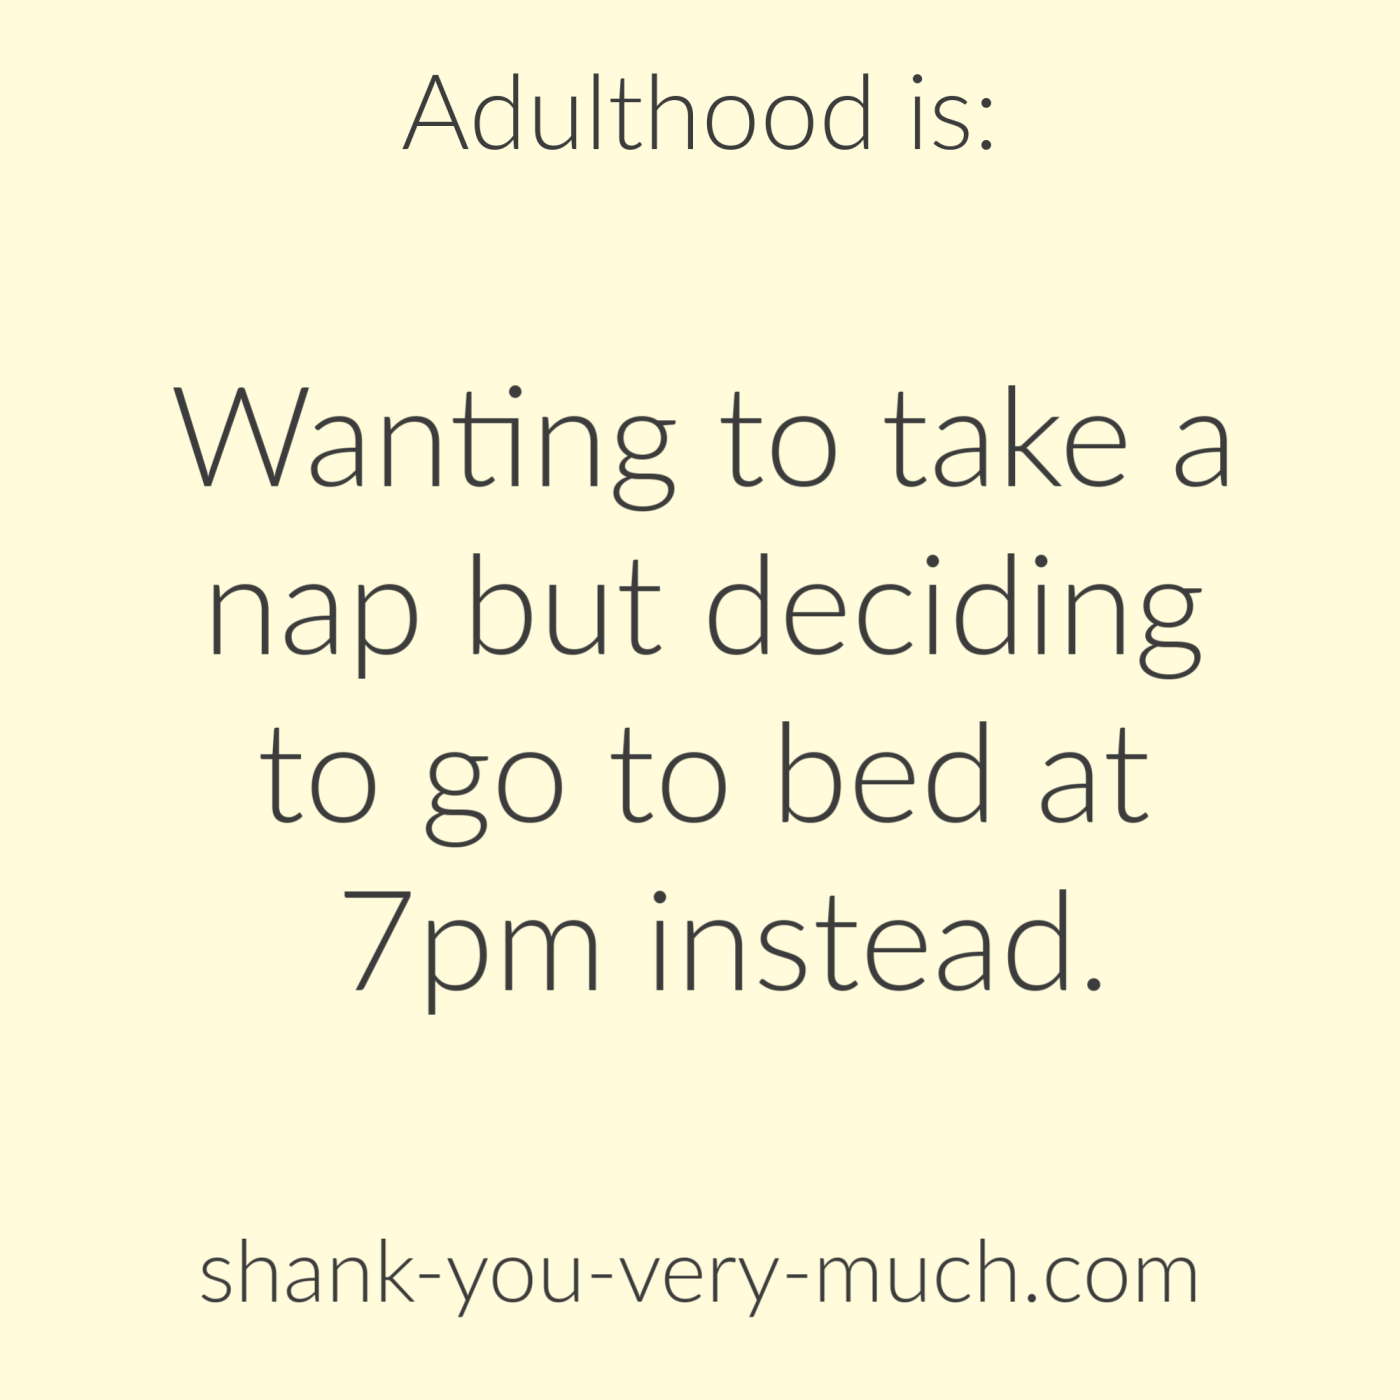 quote - adulthood is